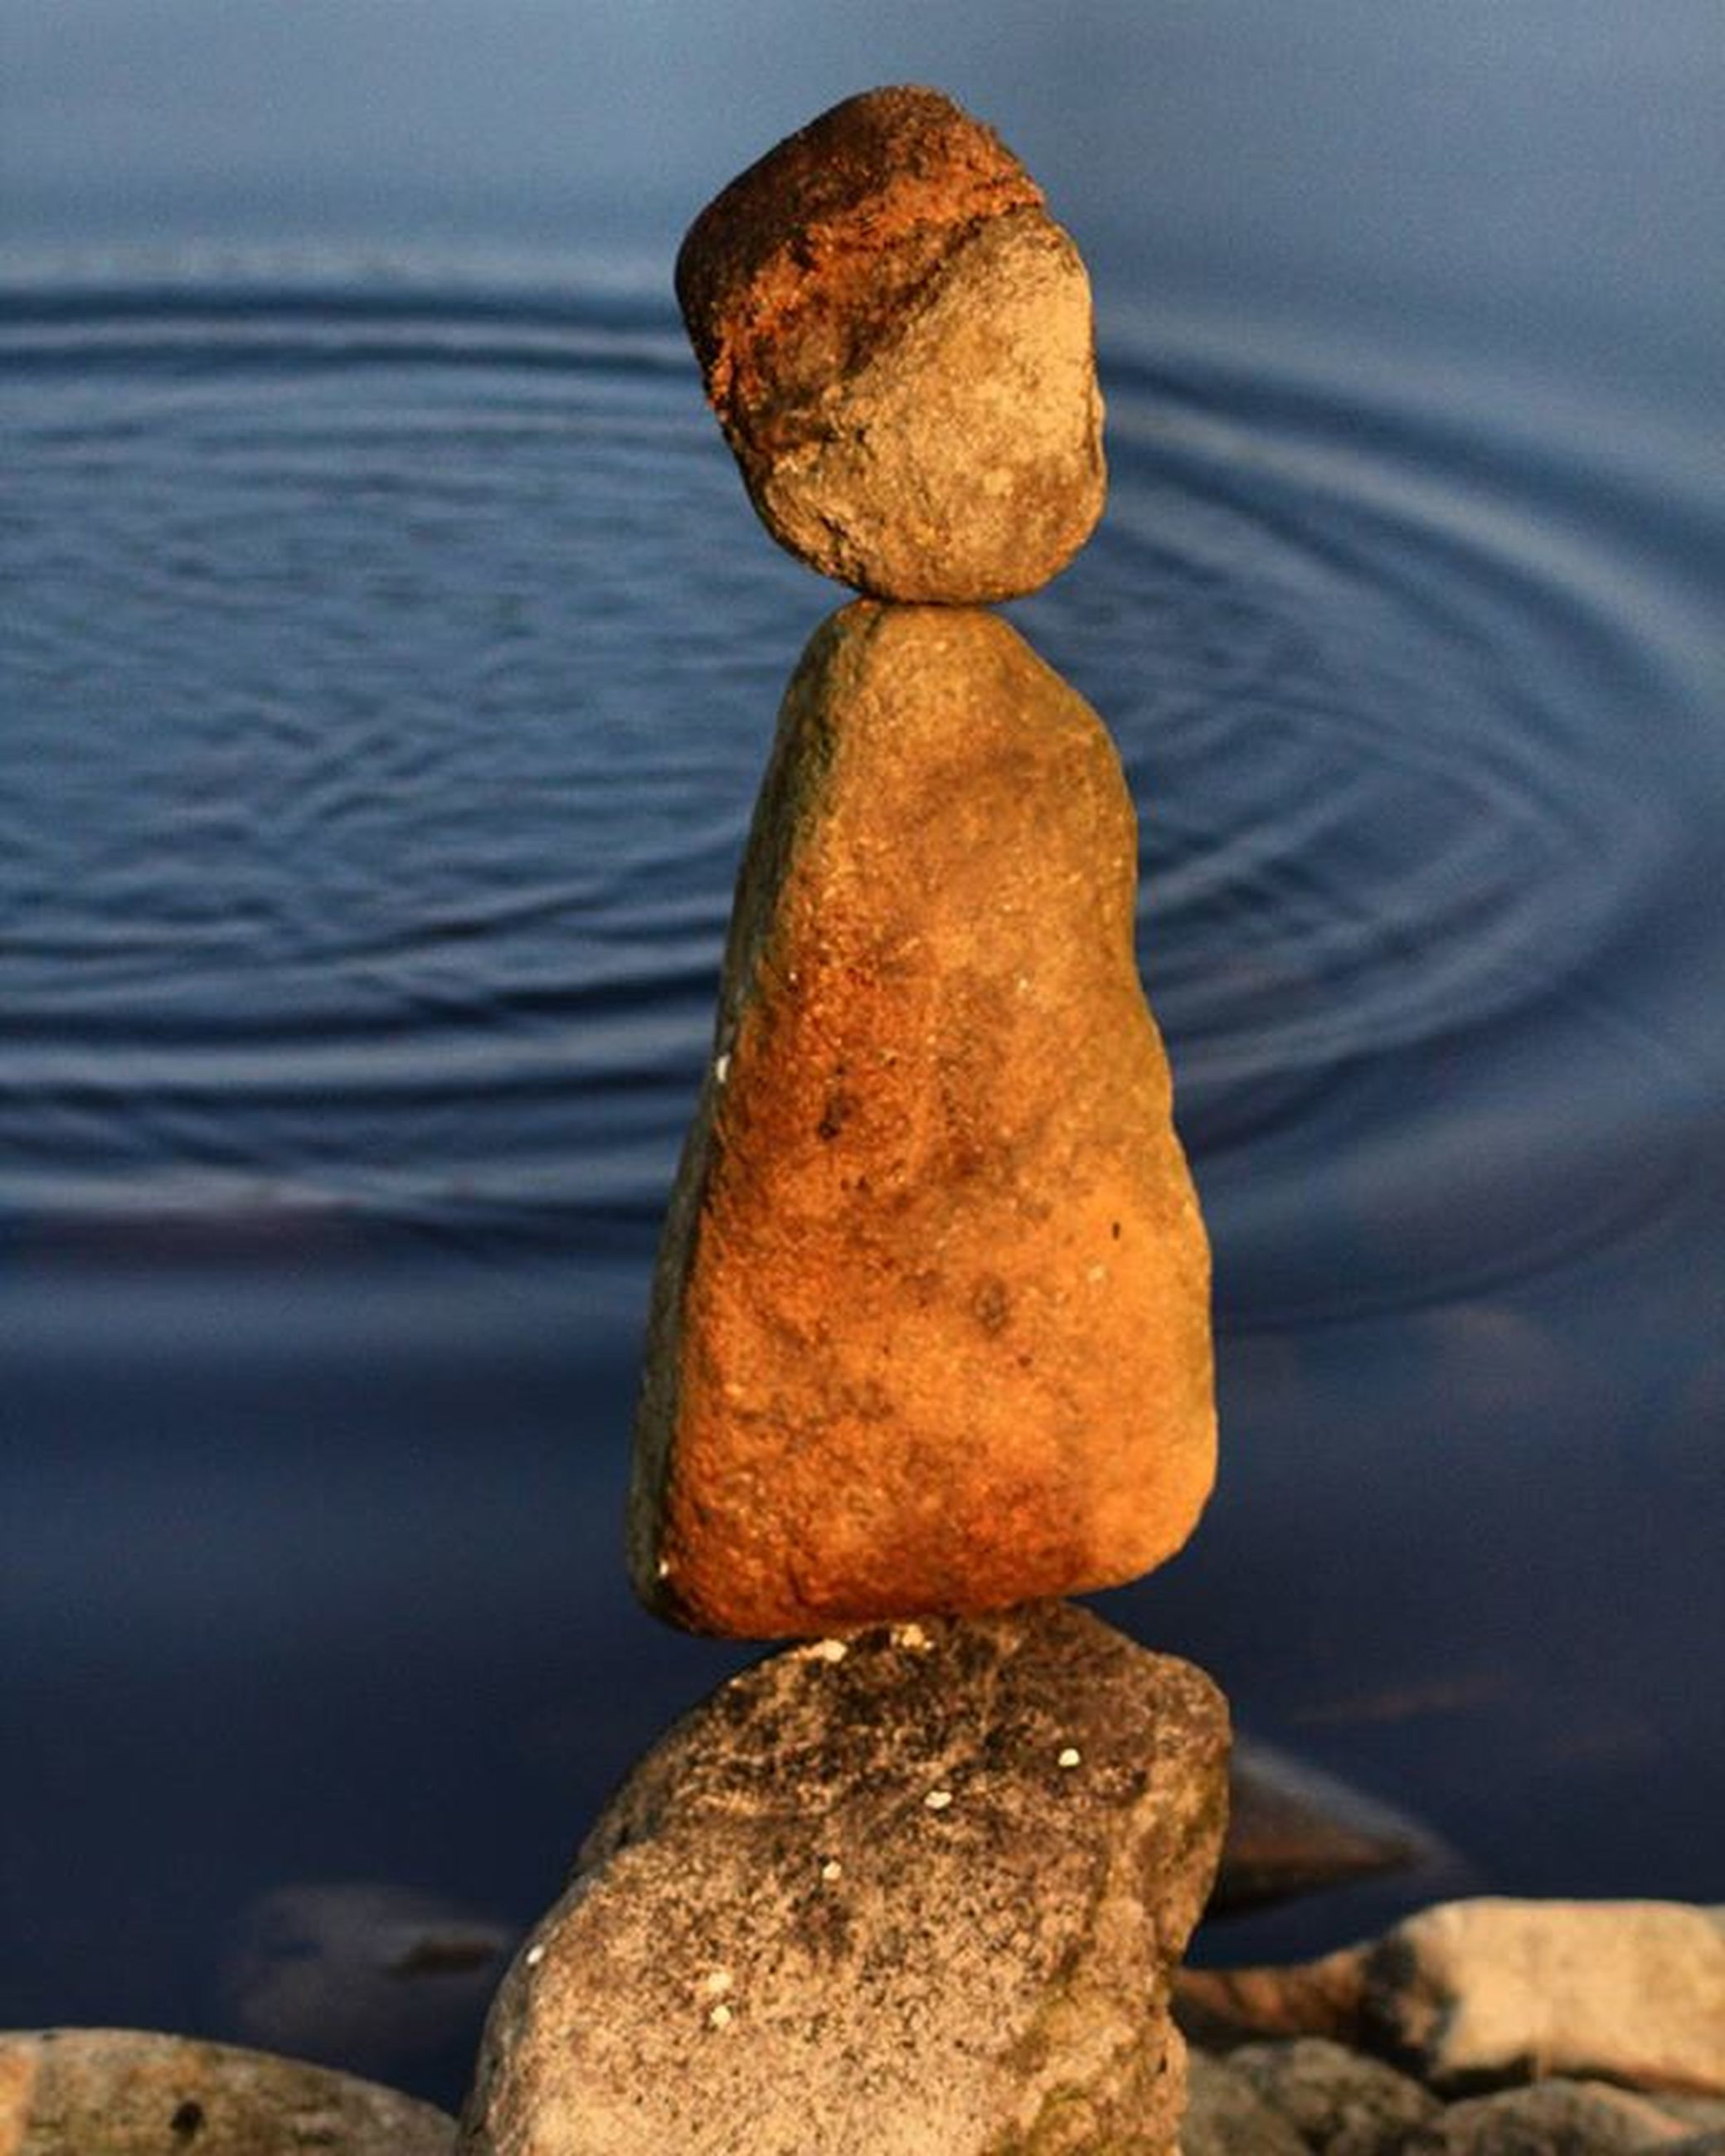 water, rock - object, tranquility, focus on foreground, close-up, nature, tranquil scene, sea, beauty in nature, stone - object, stack, rock, reflection, stone, scenics, no people, outdoors, lake, day, pebble